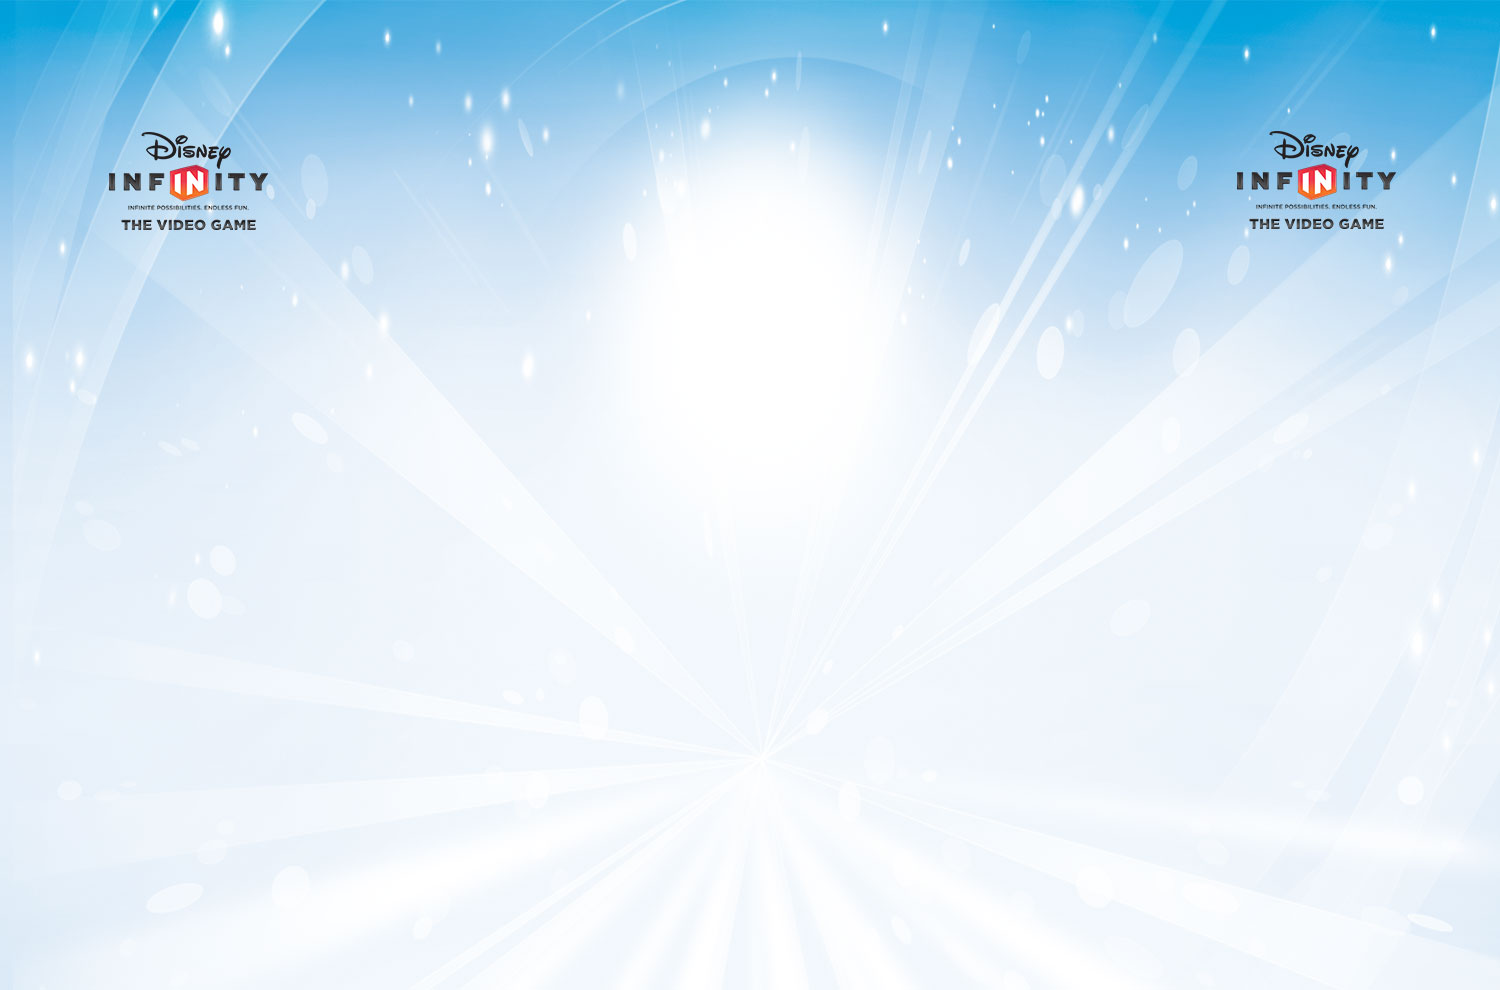 Infinity Backgrounds Camera Information 1500x990